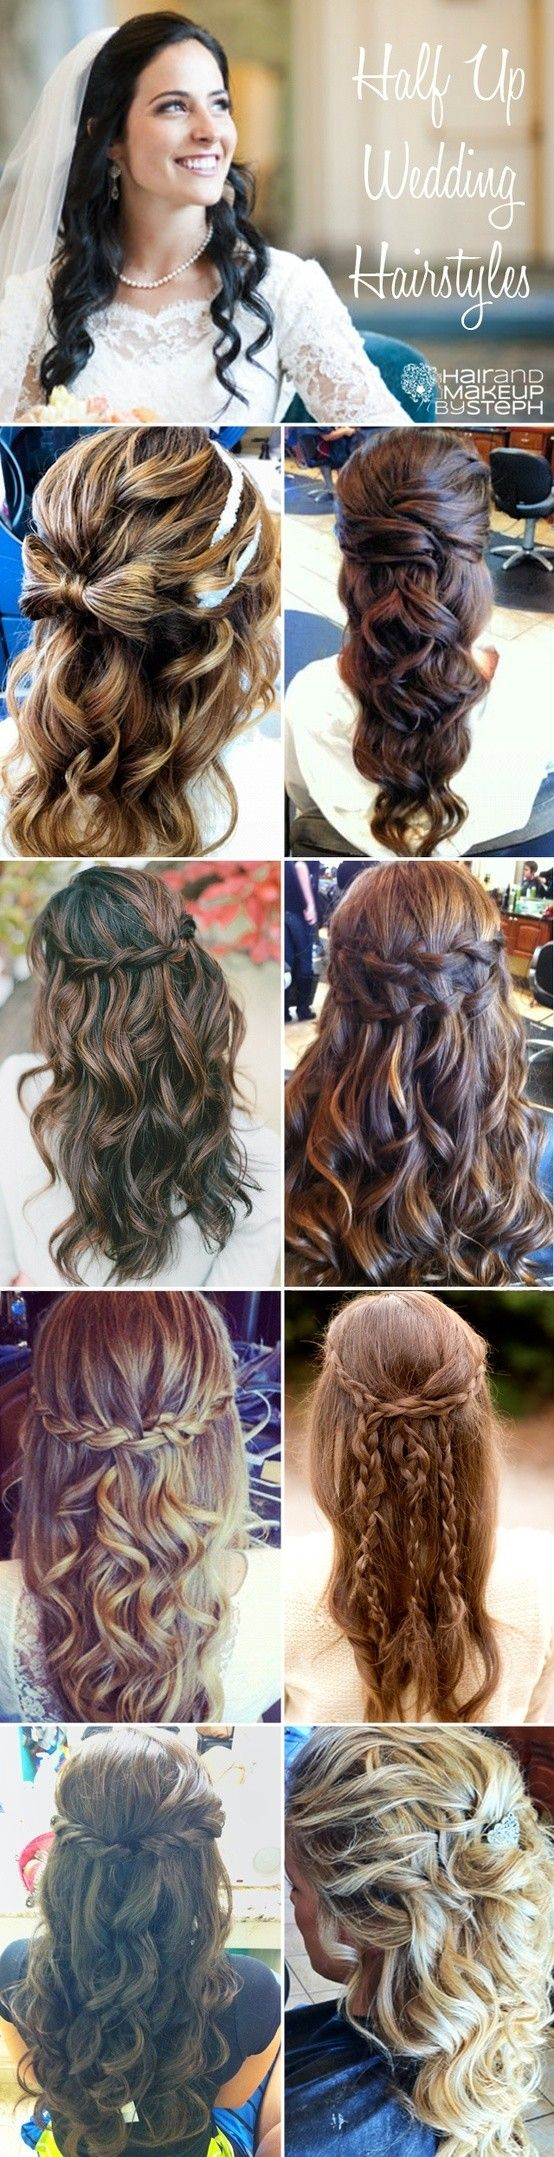 Hairstyles For Little Girls For Communion